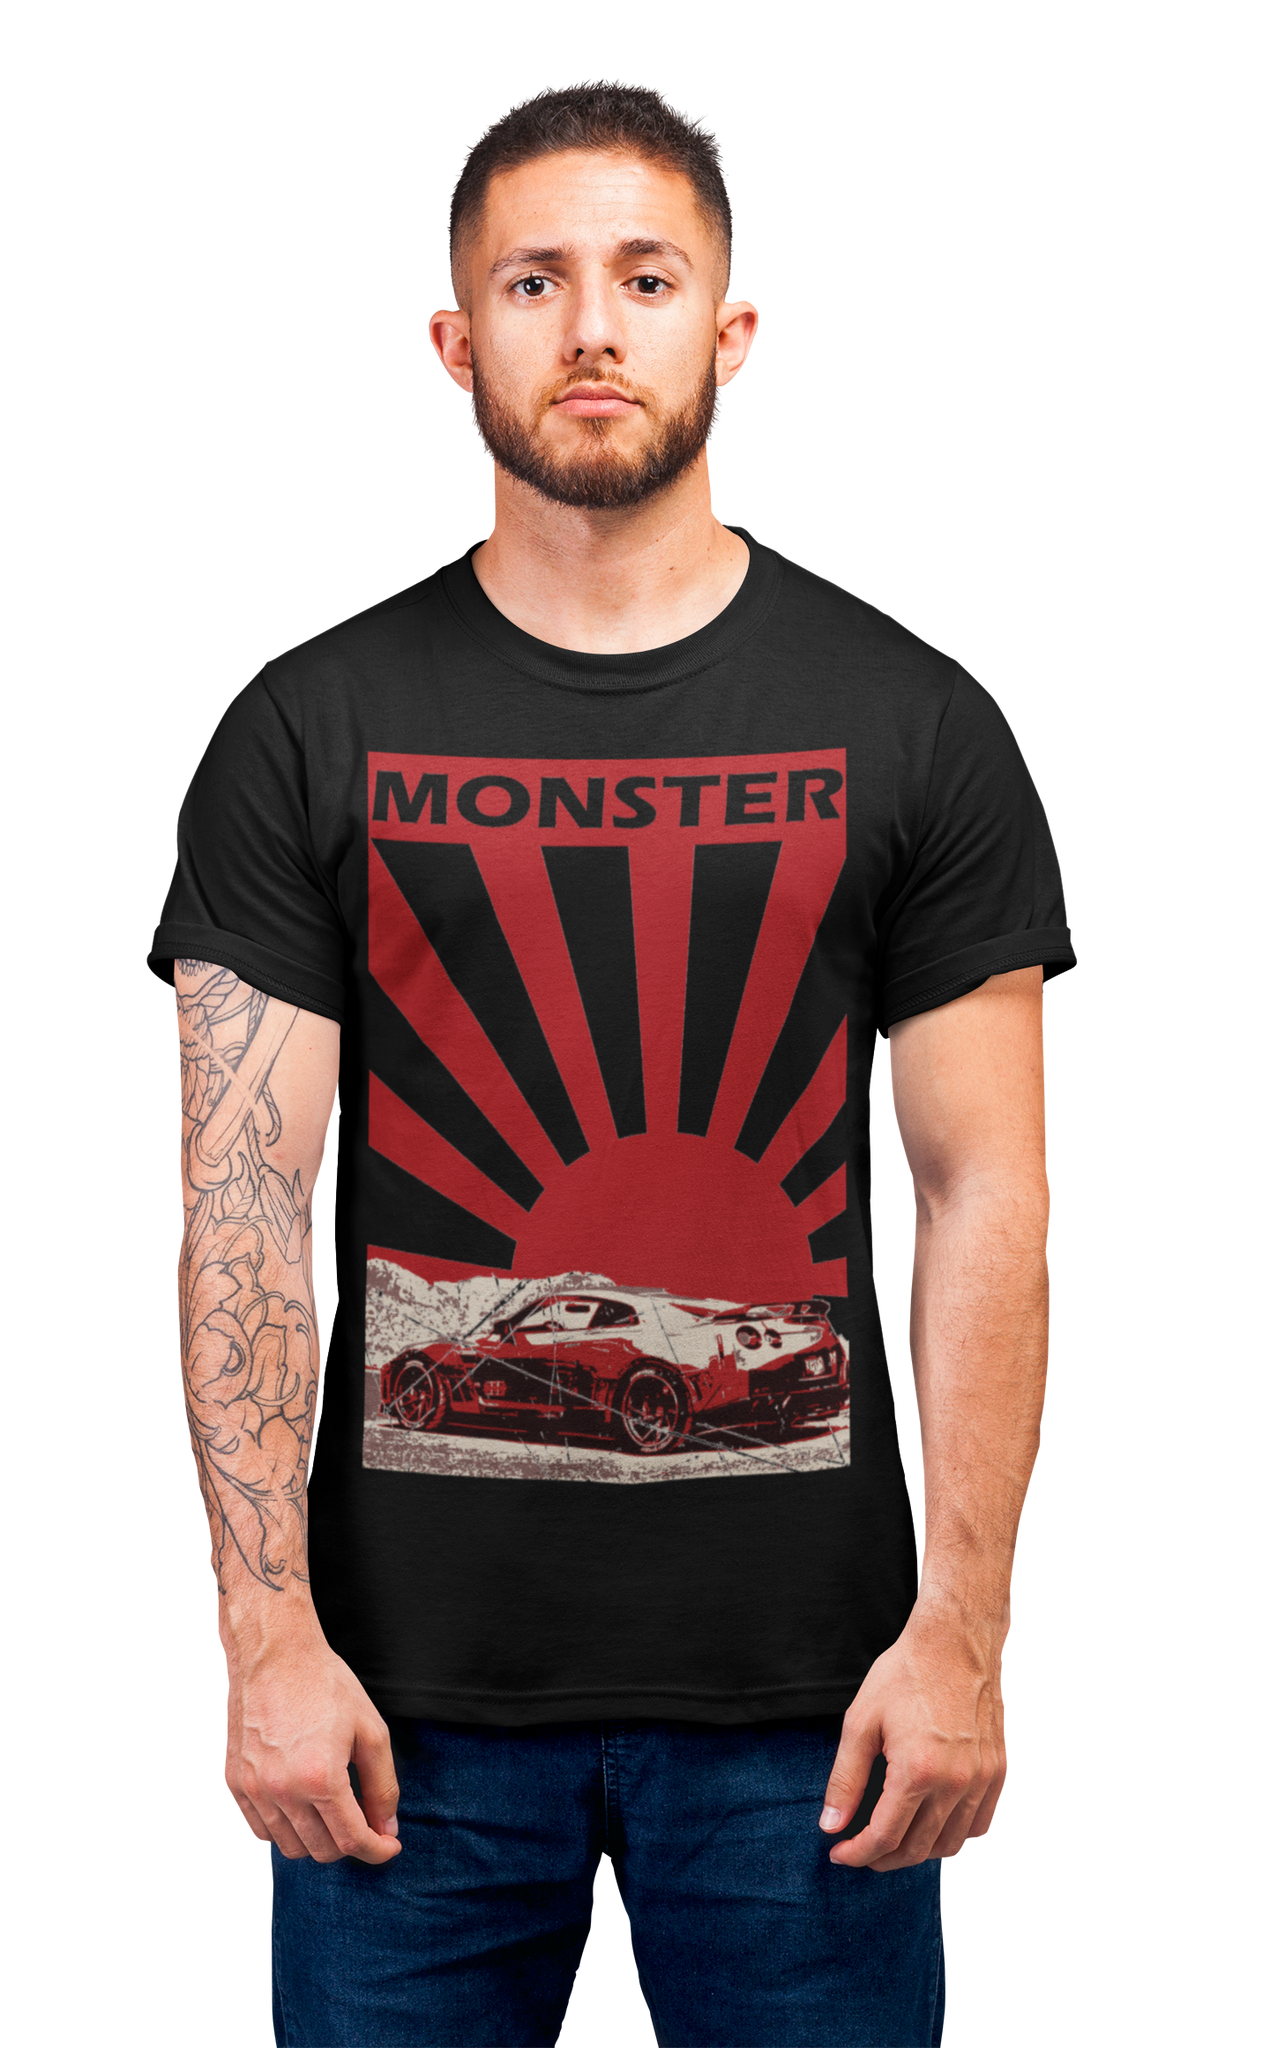 R35 Monster T-Shirt